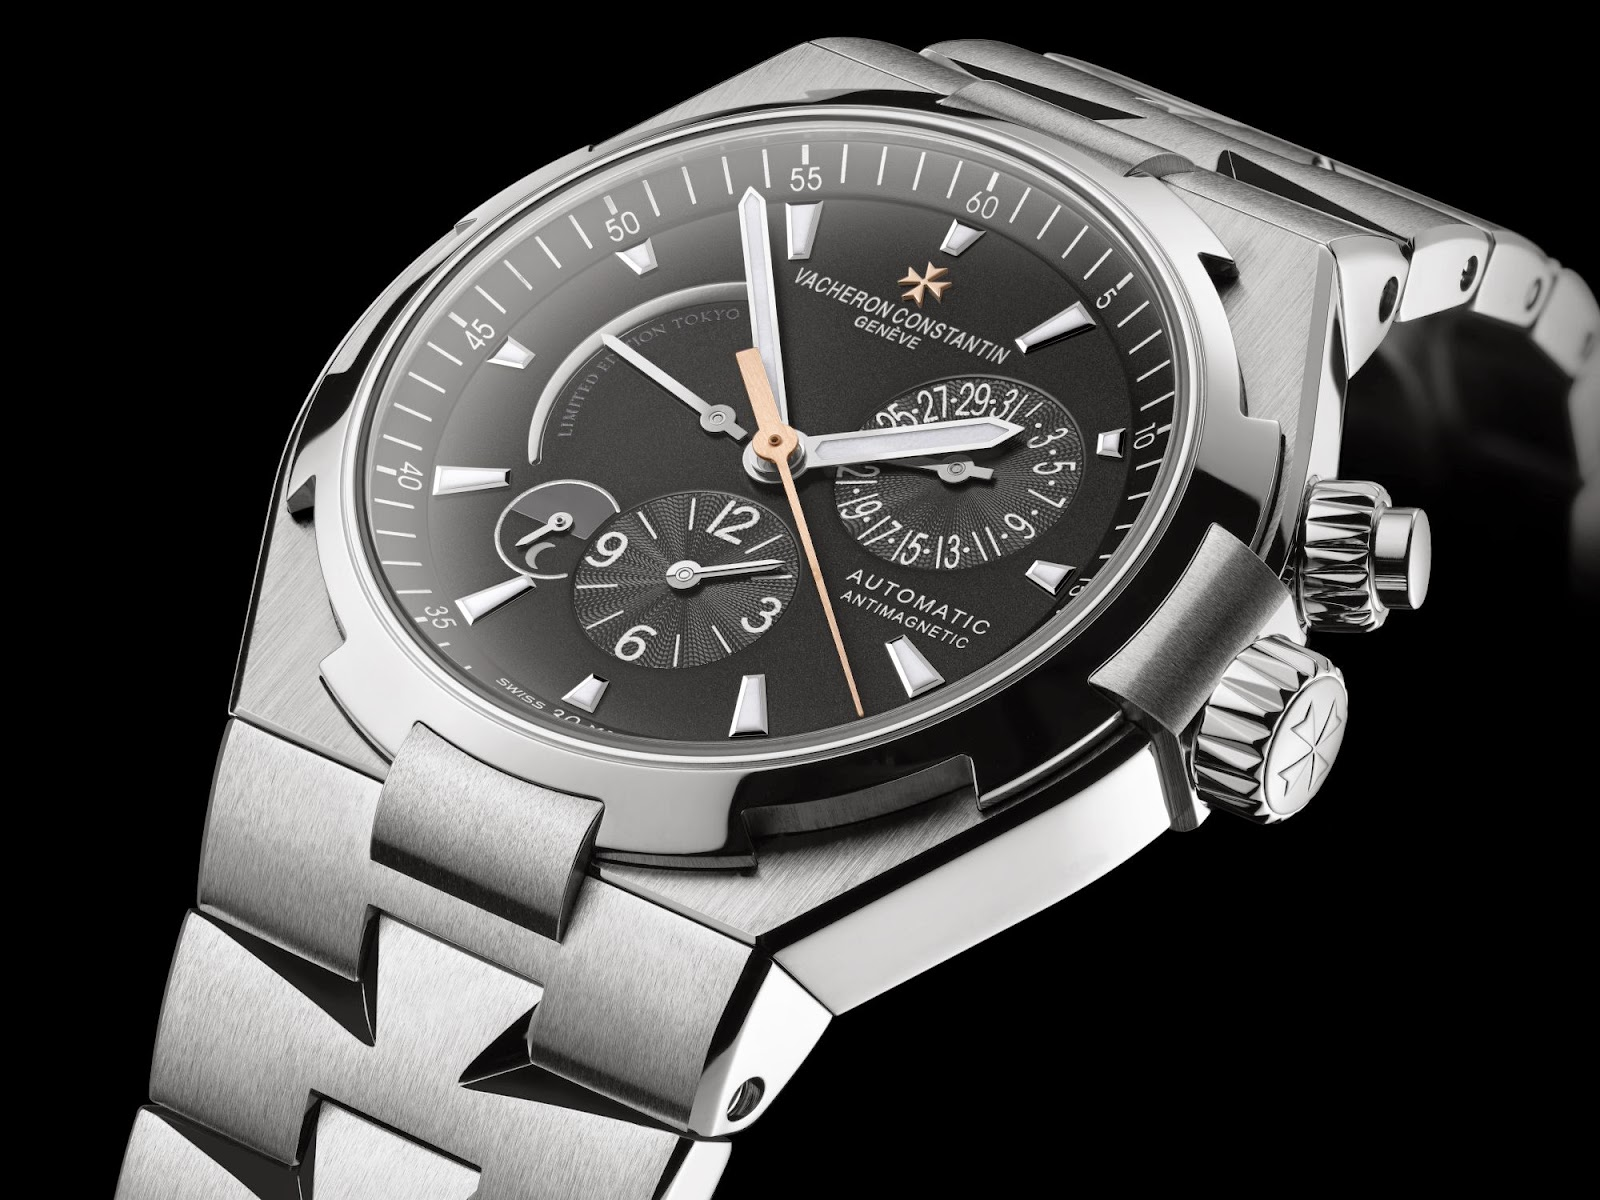 Vacheron Constantin Overseas Dual Time Replica watch